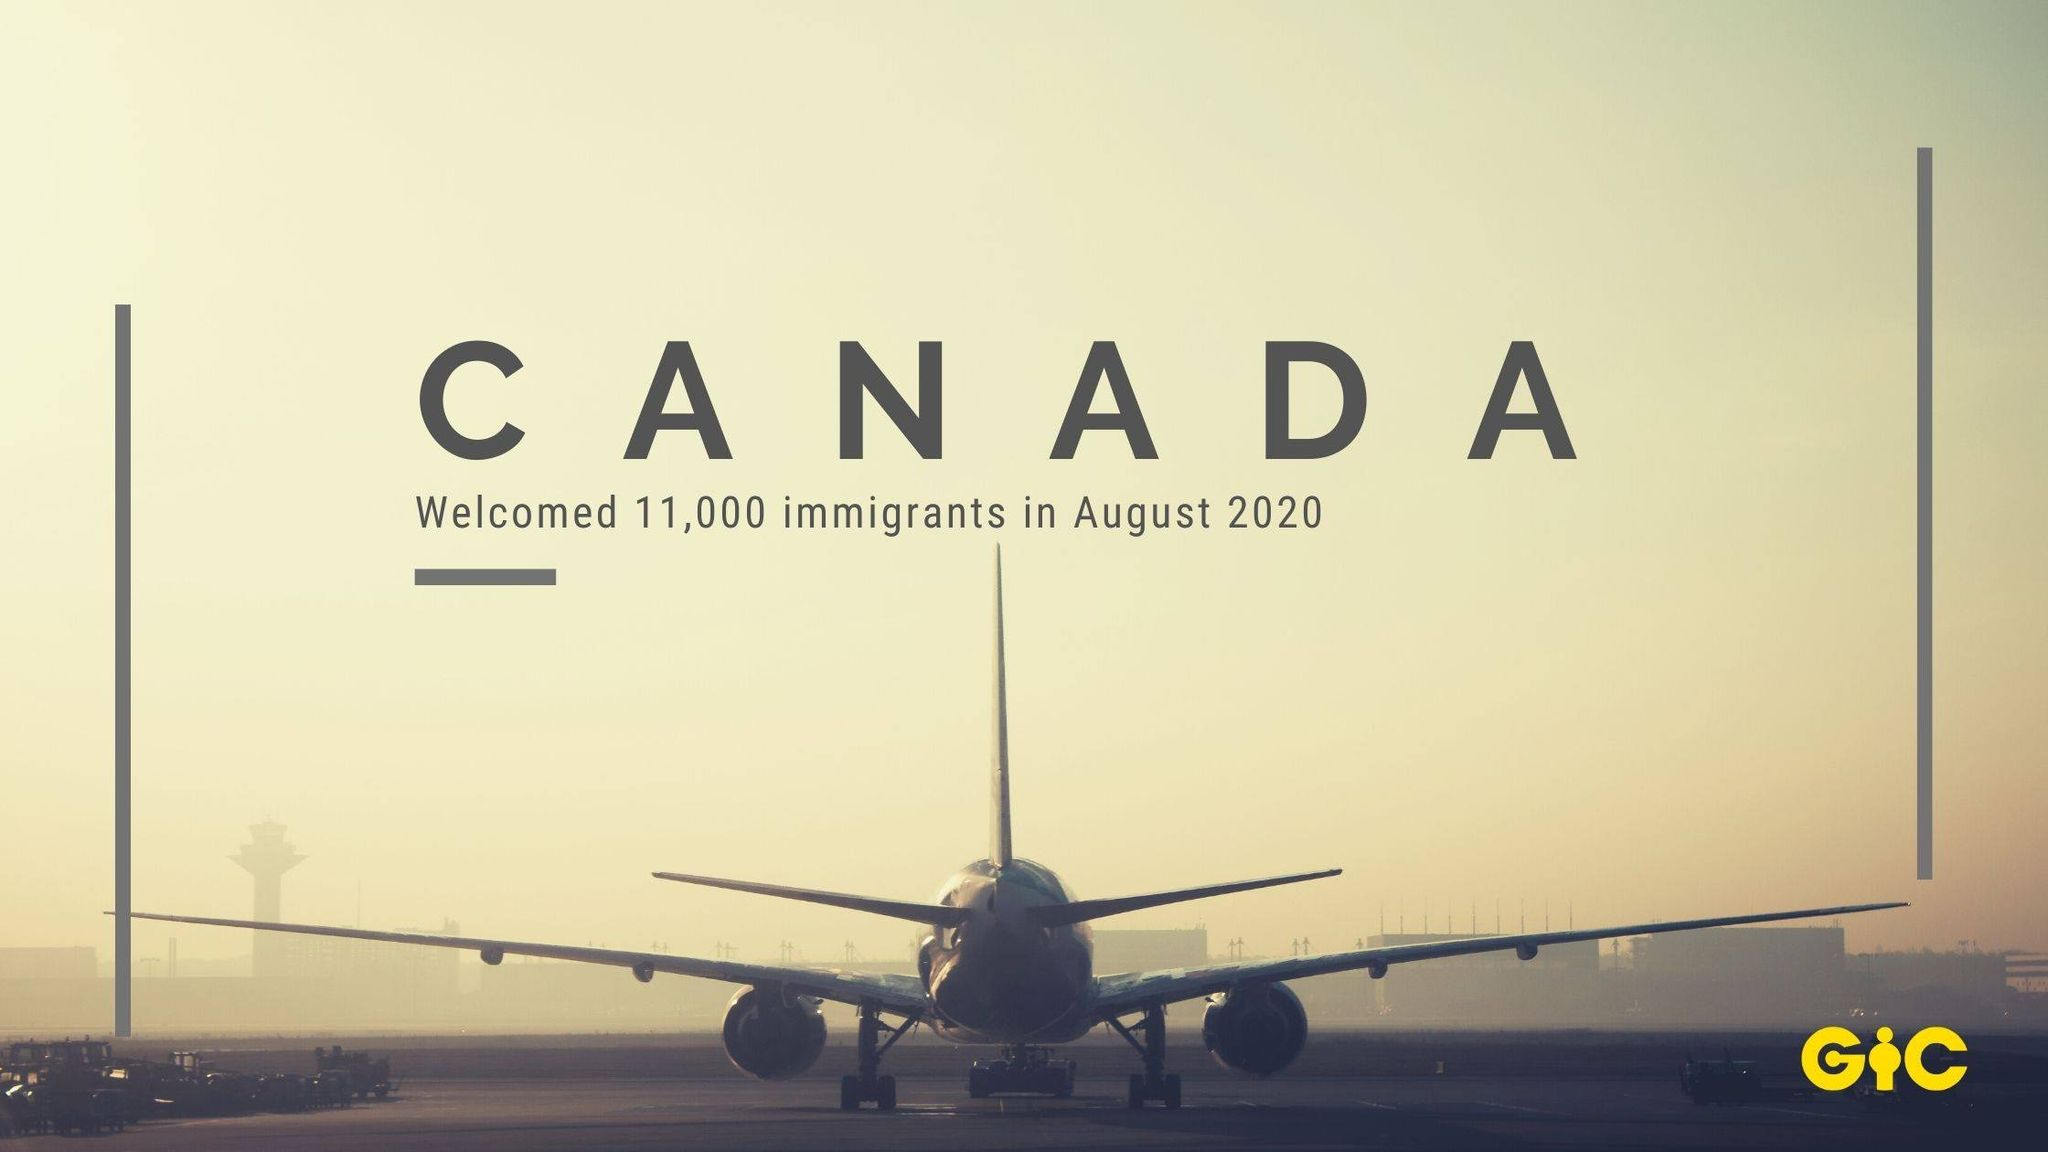 Canada welcomed 11,000 immigrants in August 2020